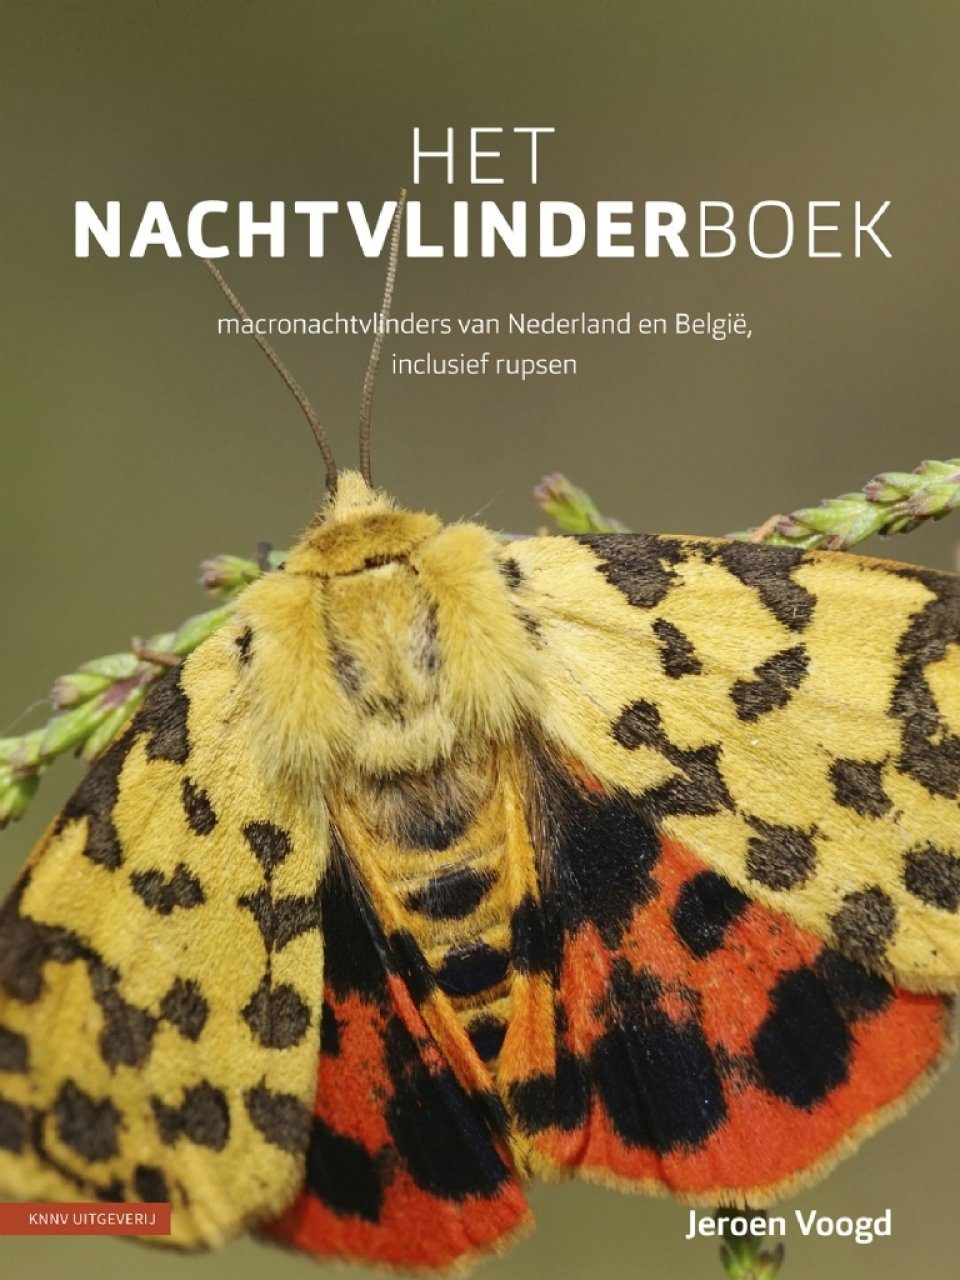 Het Nachtvlinderboek: Macronachtvlinders van Nederland en België, Inclusief Rupsen [The Book of Moths: Nocturnal Macro-Moths of the Netherlands and Belgium, Including Caterpillars]